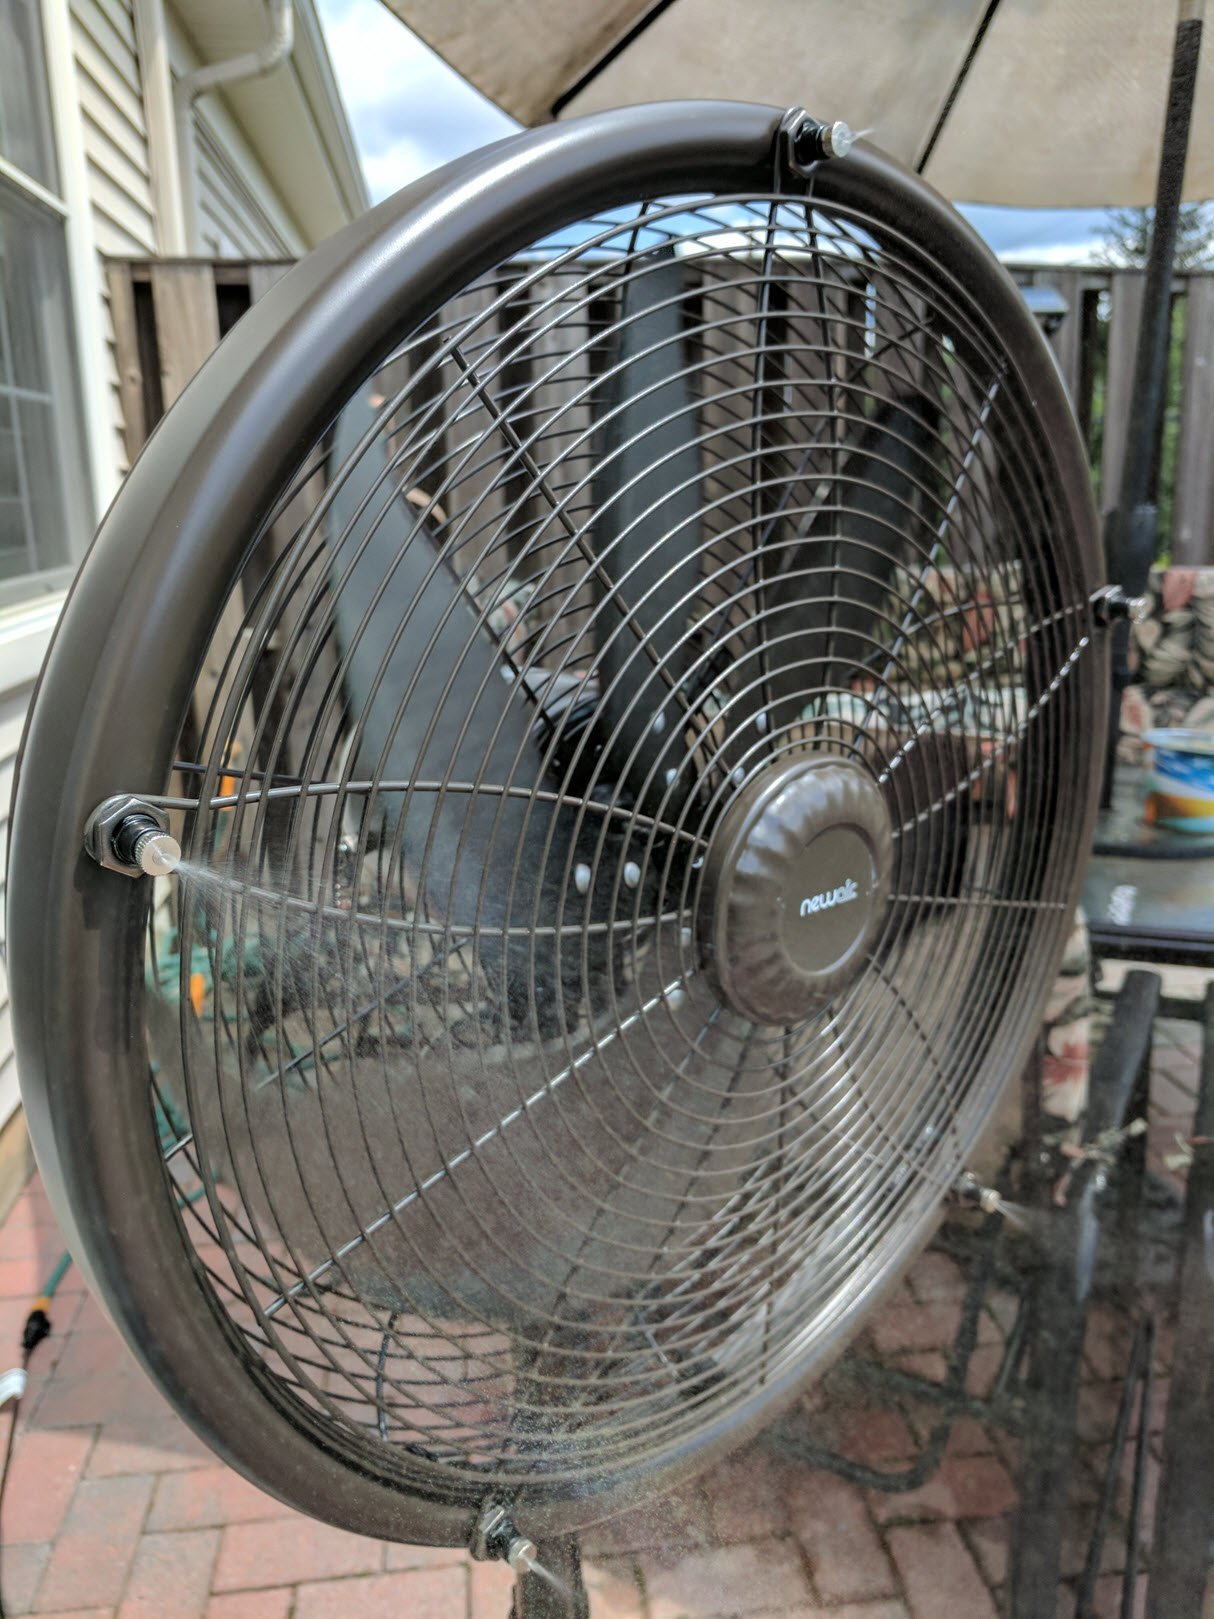 The Newair Outdoor Misting Fan